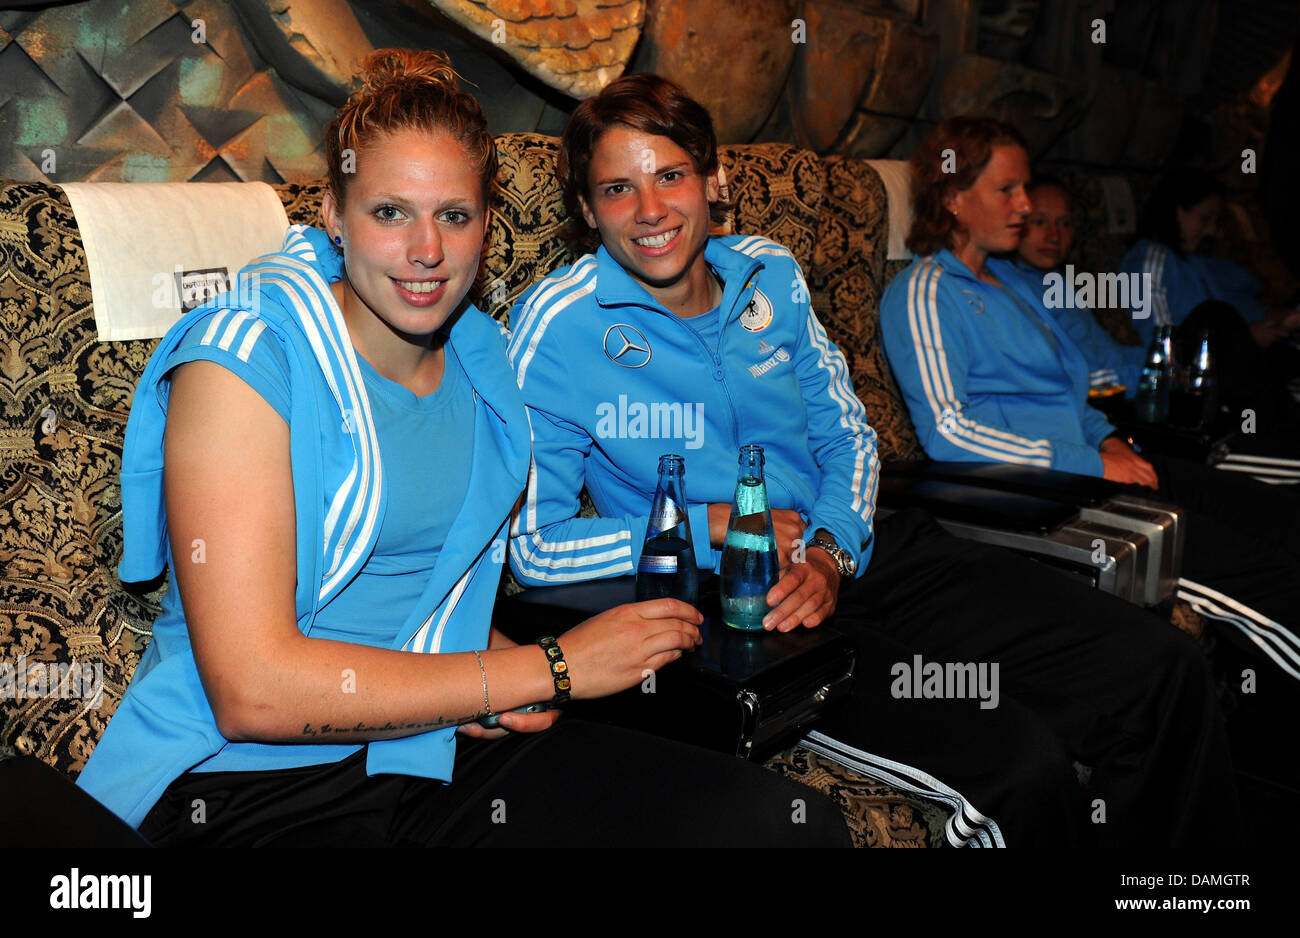 Kim Kulig (L) is seen with team mate Annike Krahn during the German Women National Team 'Tatort' preview - Stock Image